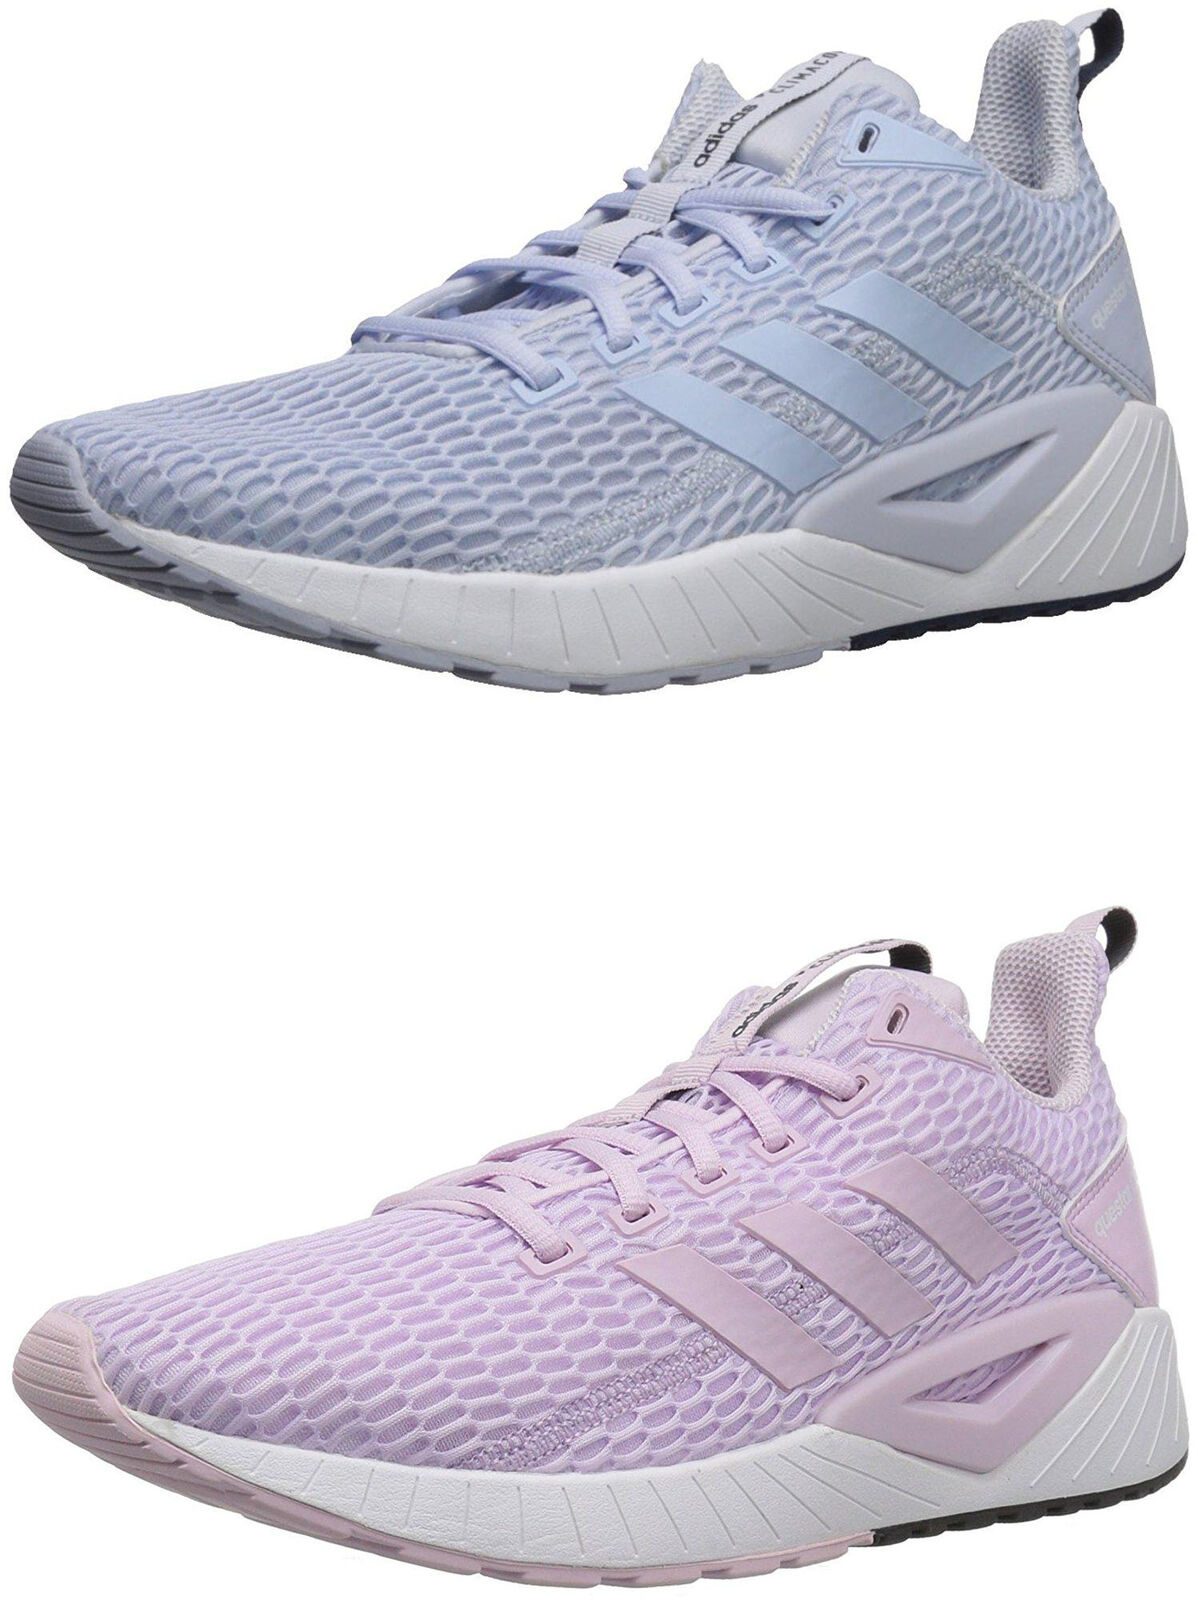 adidas Women's Questar CC Running Shoes, 2 Colors